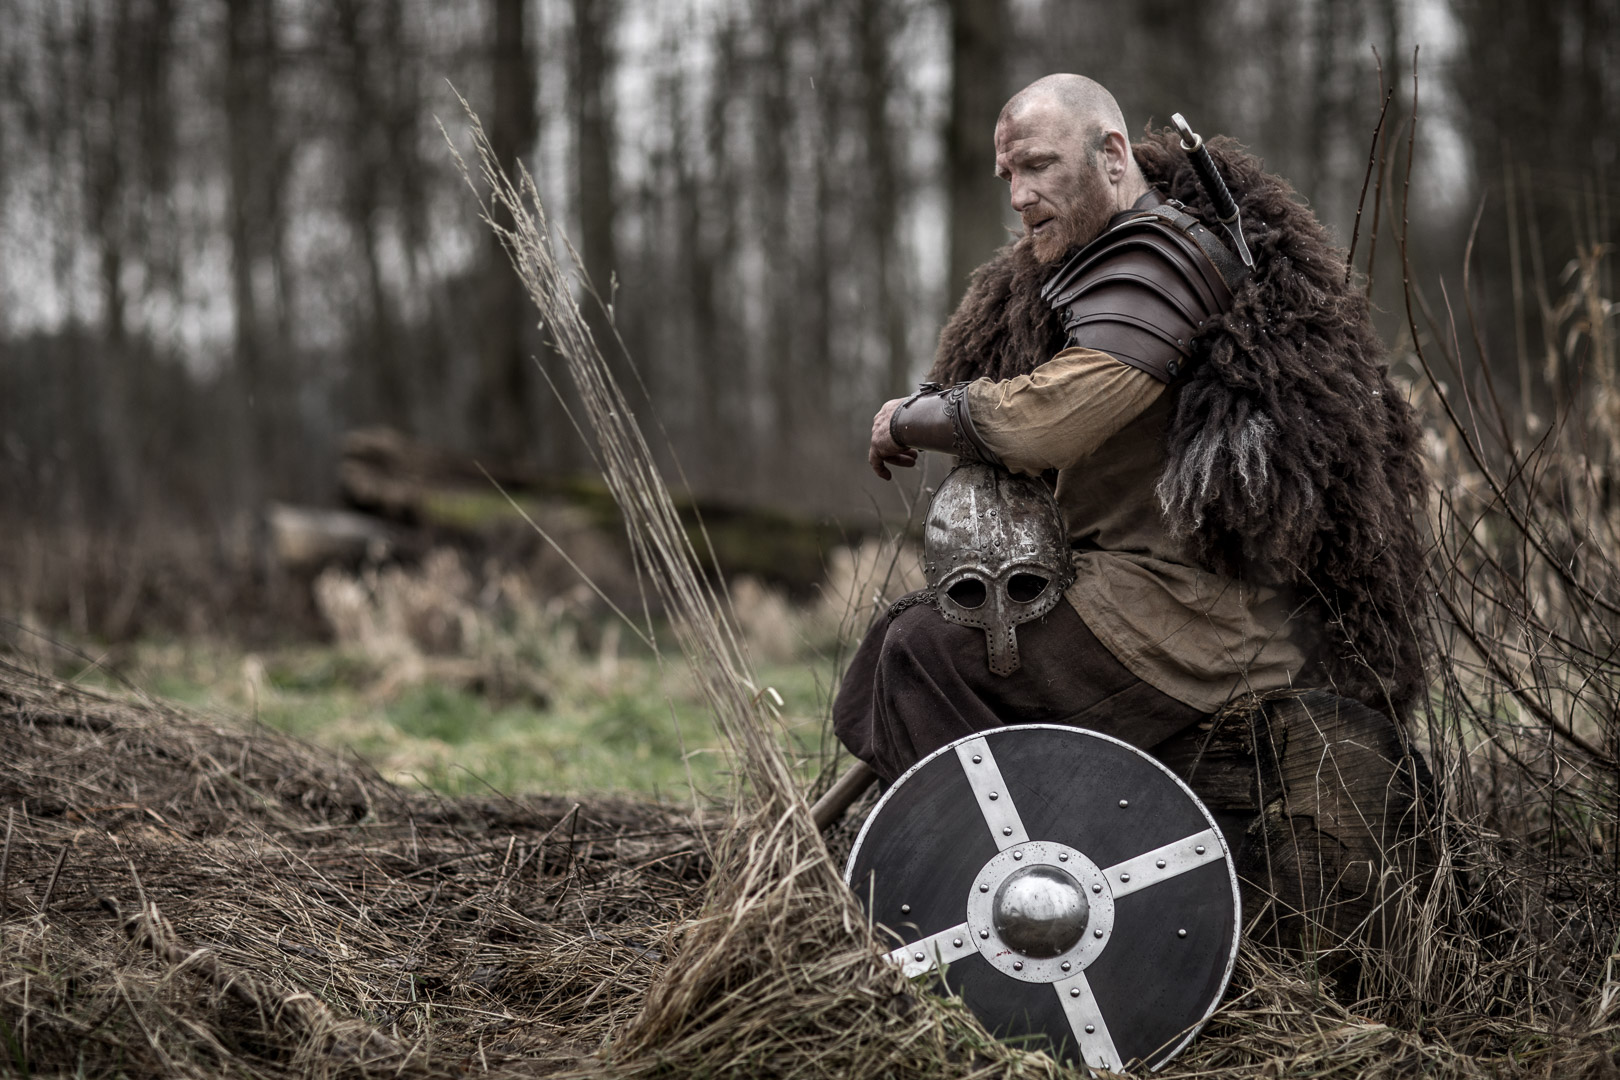 A Welsh Game of Thrones? Our medieval myths are even more captivating